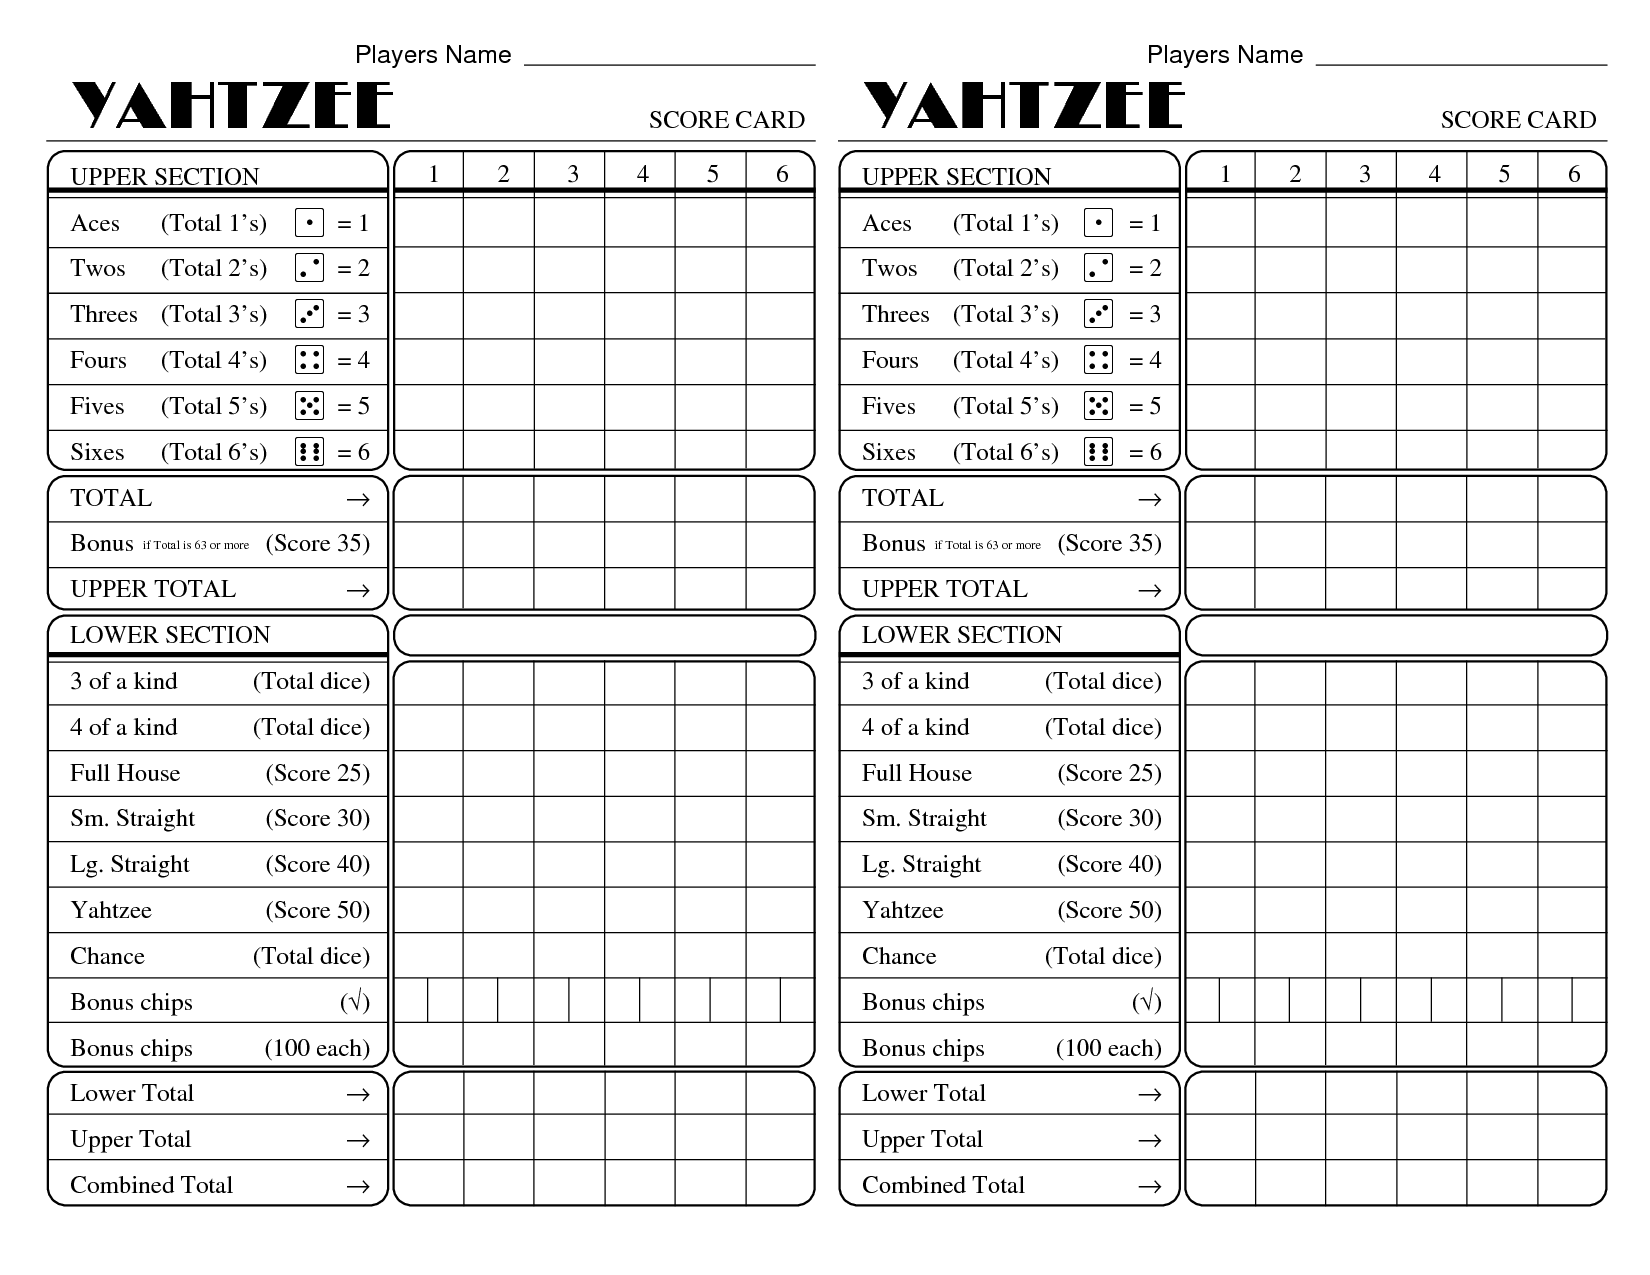 photograph regarding Printable Yahtzee Sheets known as Printable+Yahtzee+Ranking+Sheets For The Kiddos Yahtzee